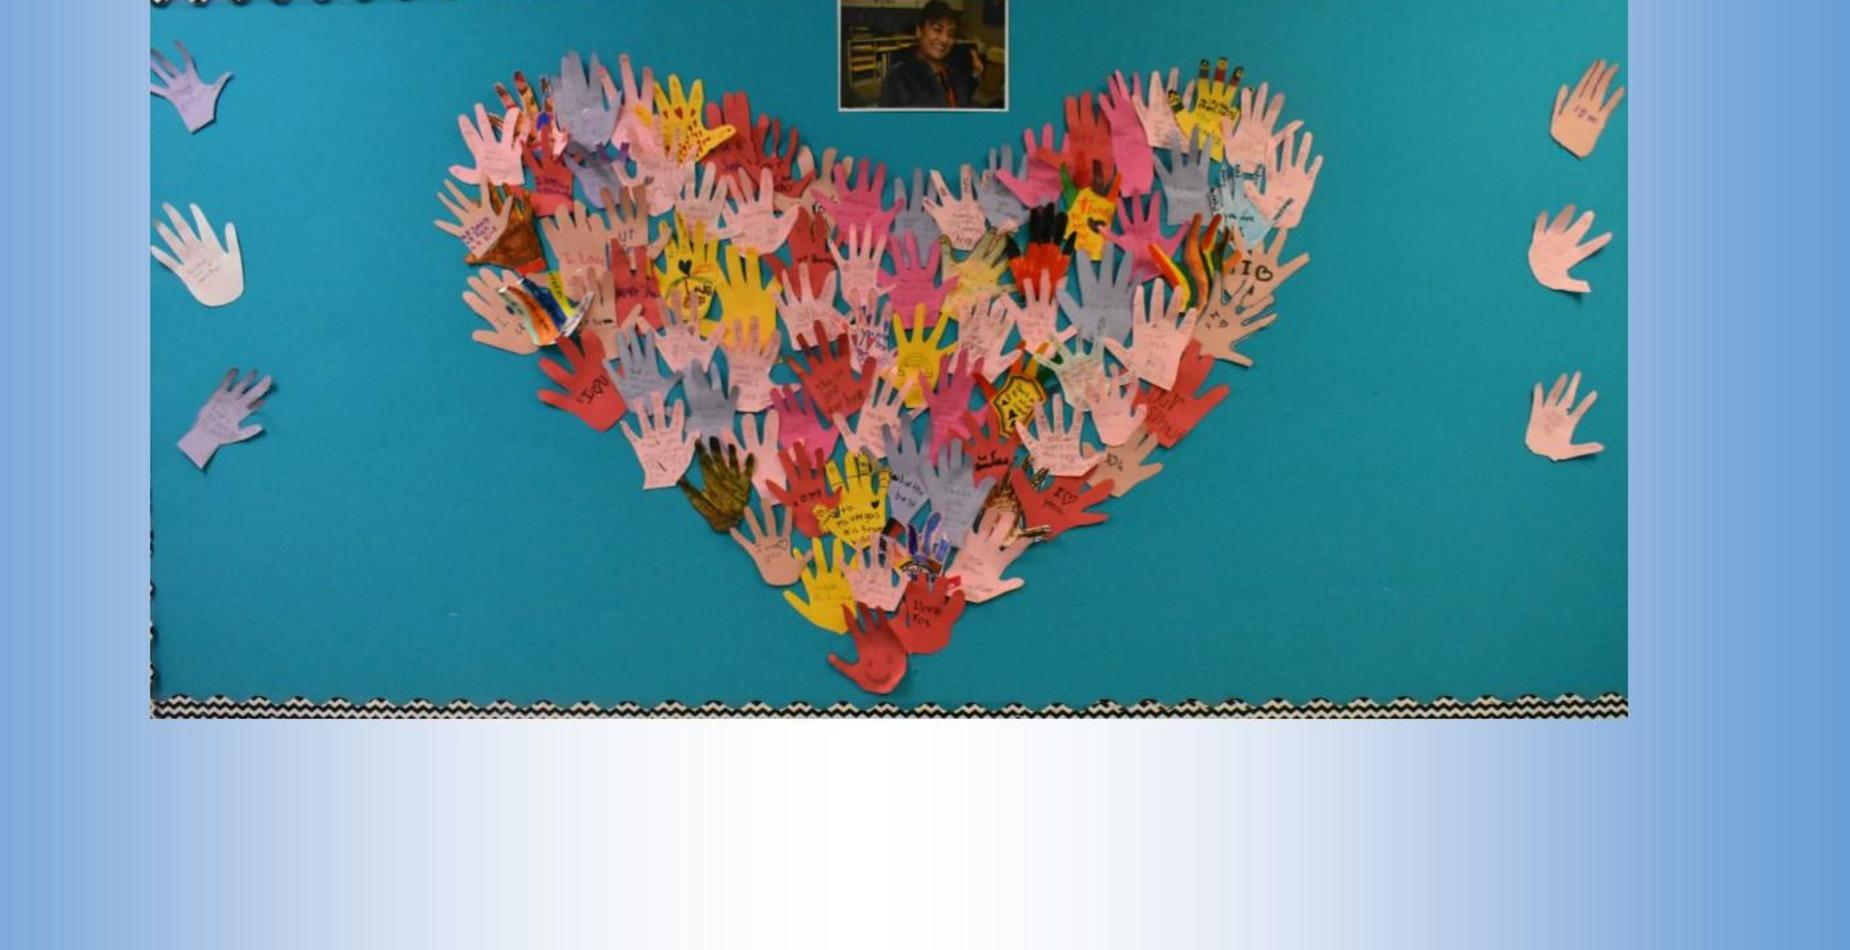 A heart made out of cut out hand prints.  Each hand has a thank you note written on it.